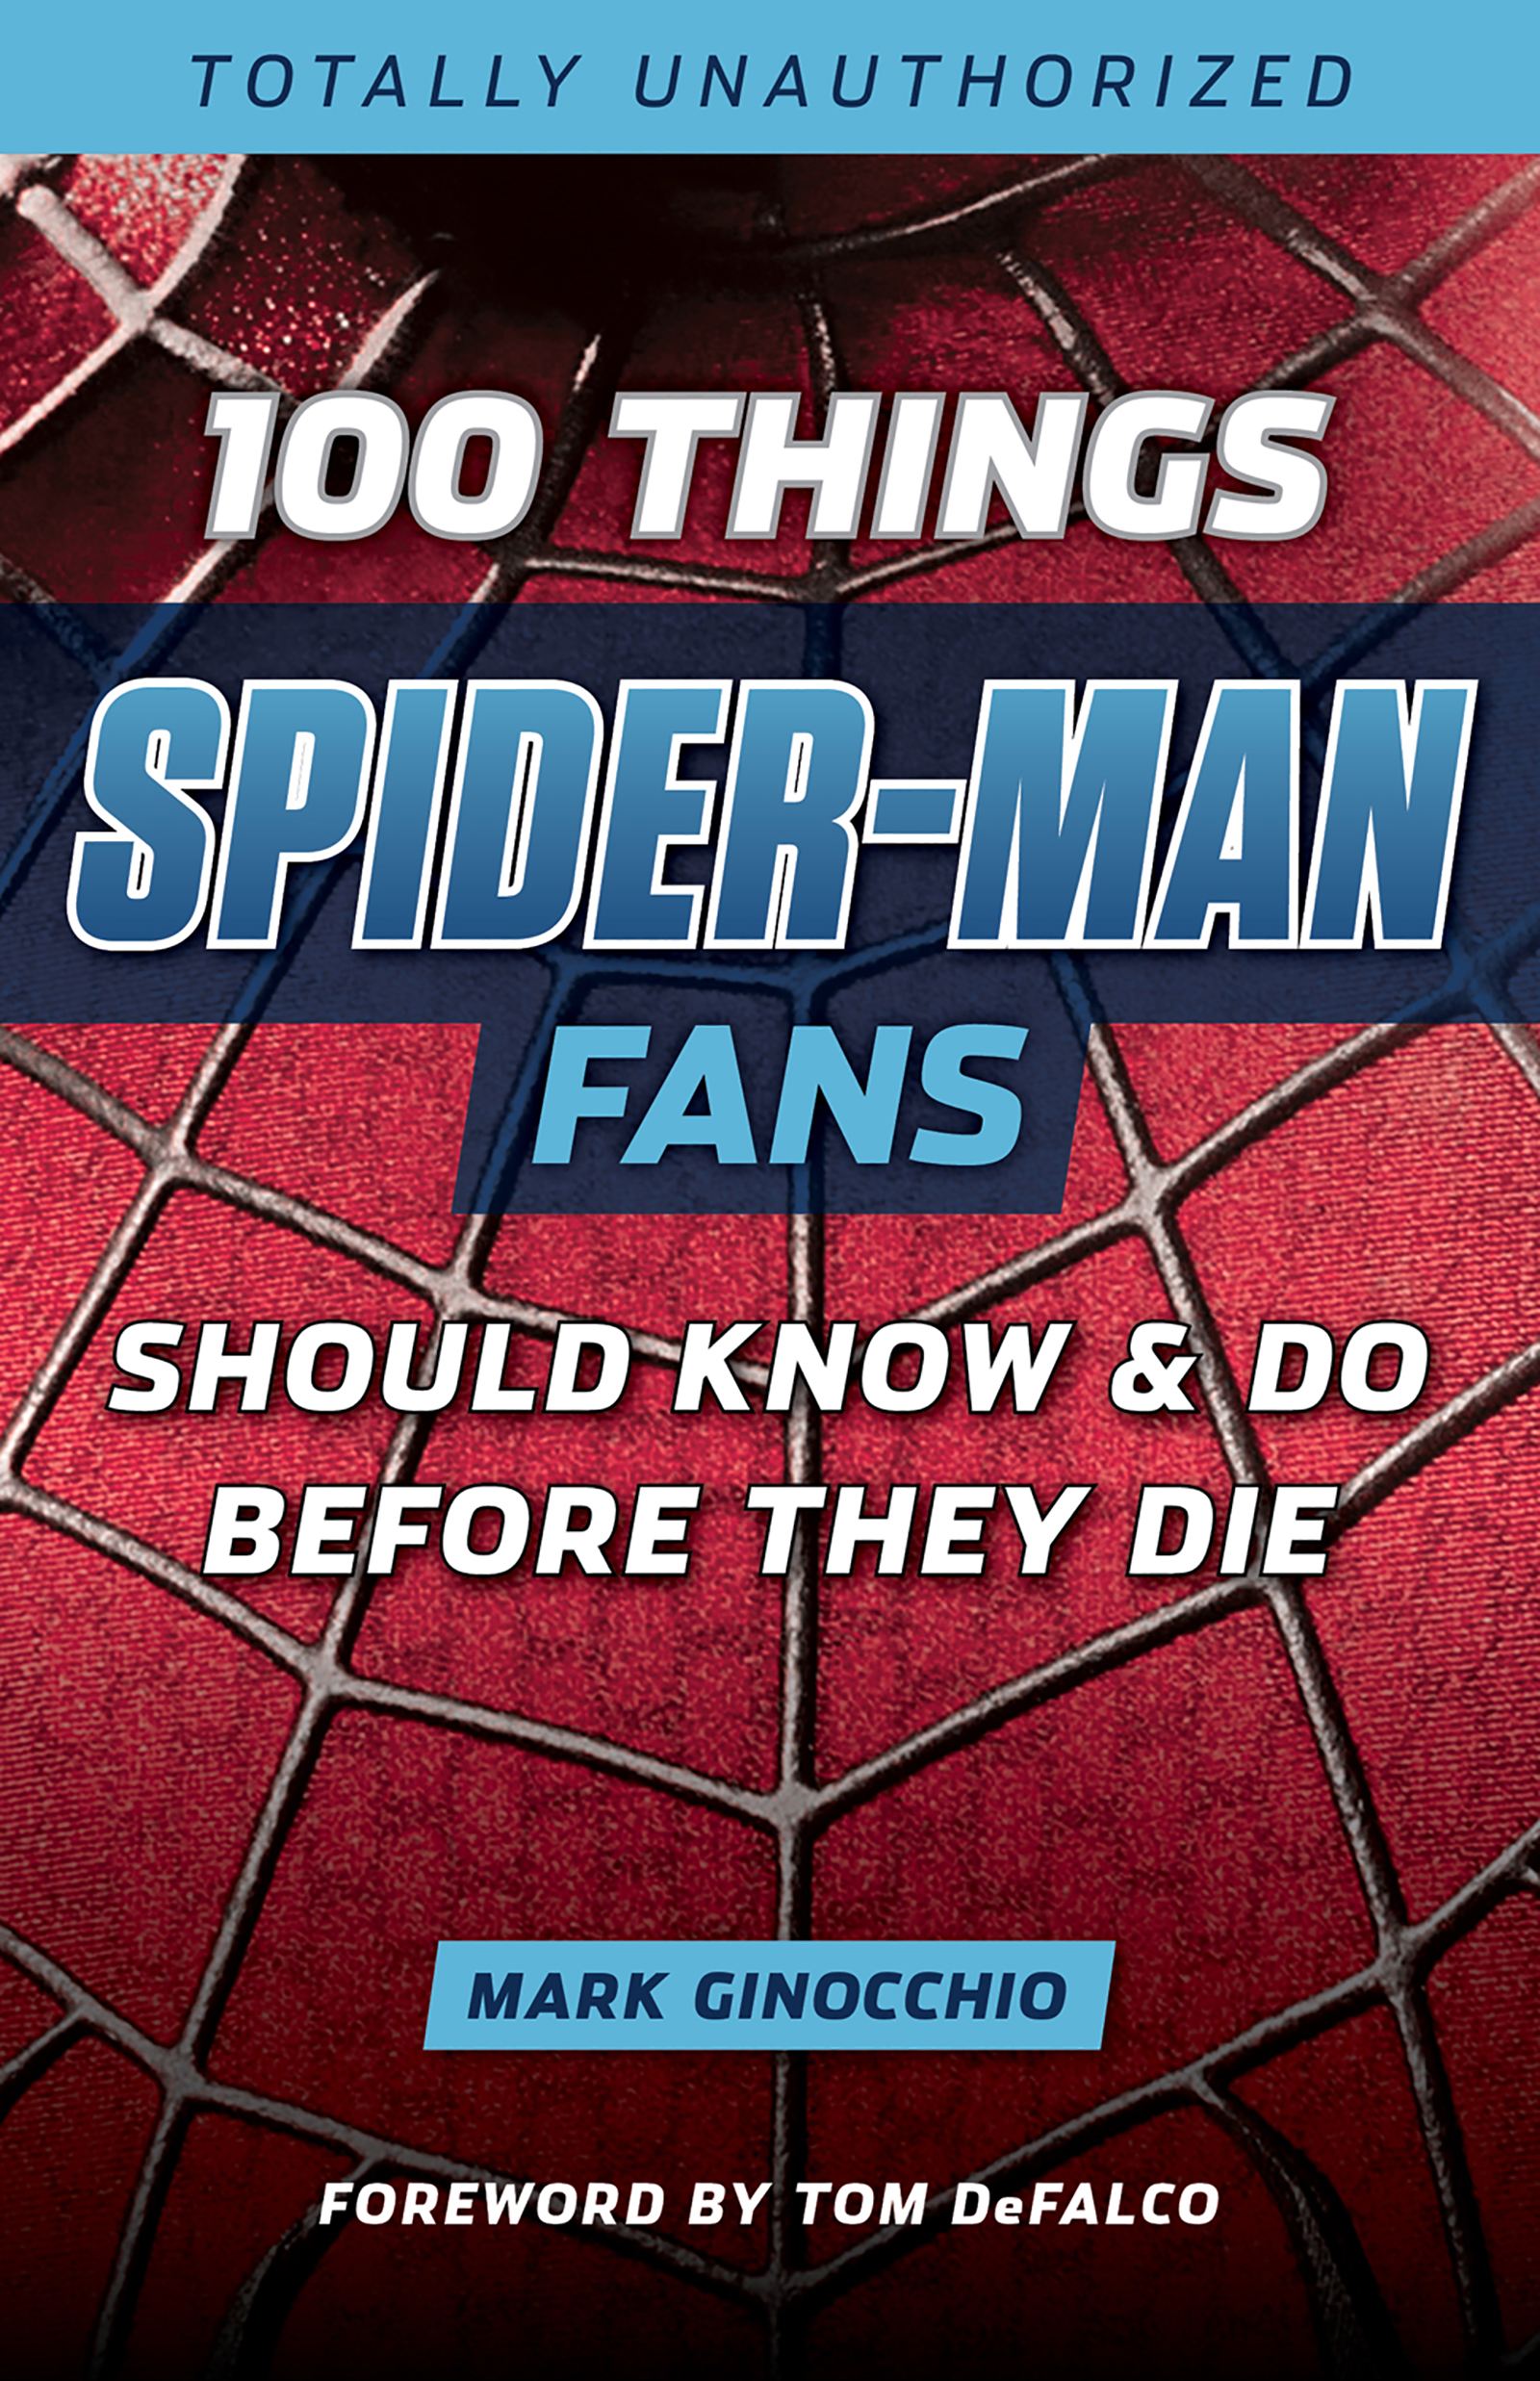 100 Things Spider-Man Fans Should Know & Do Before They Die